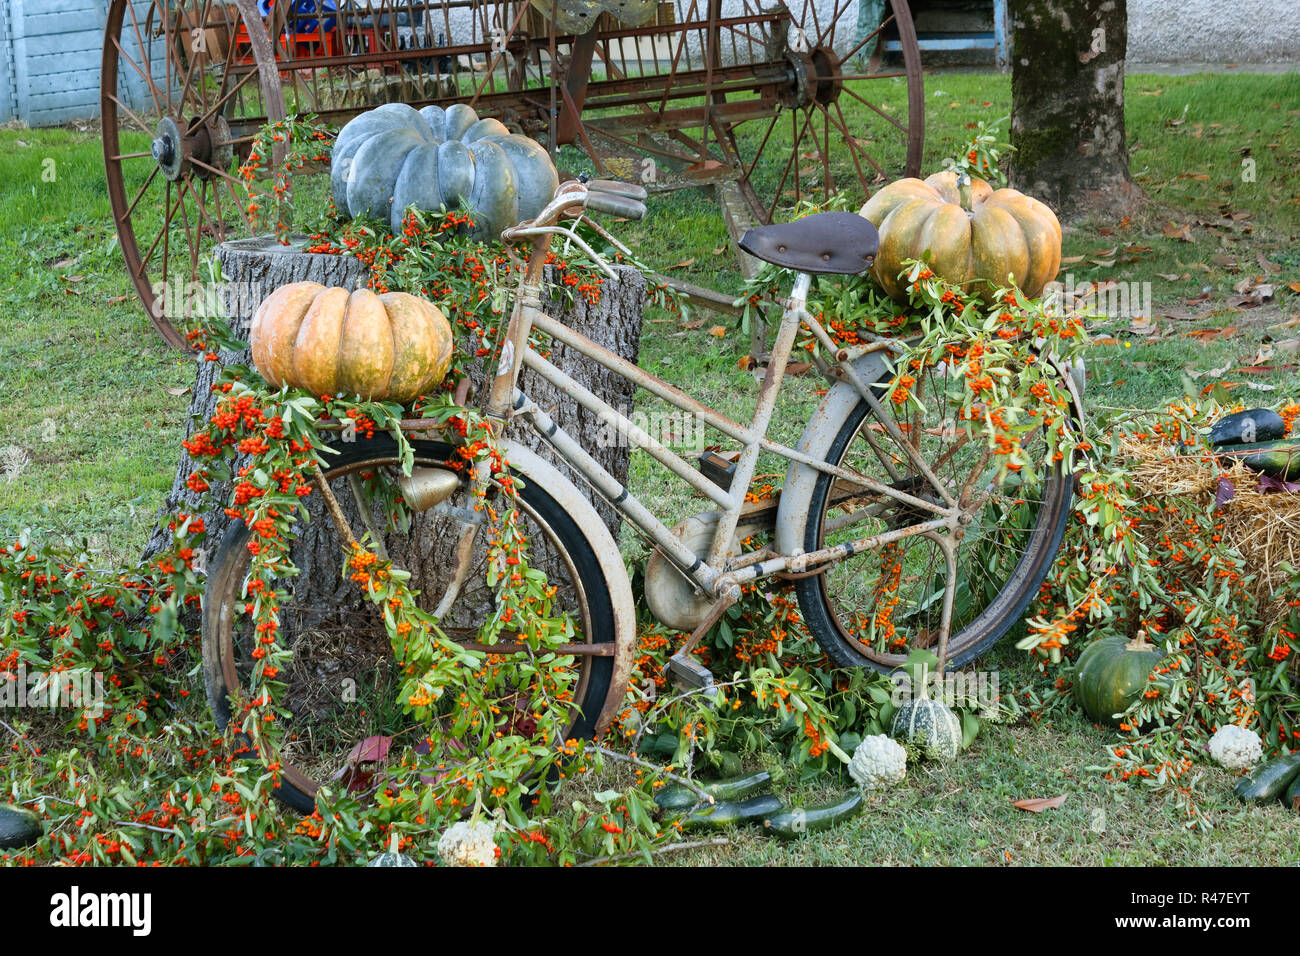 Old rusty bicycle decorated with flowers, pumpkins and other vegetables leant against a cut tree trunk in a garden - Stock Image